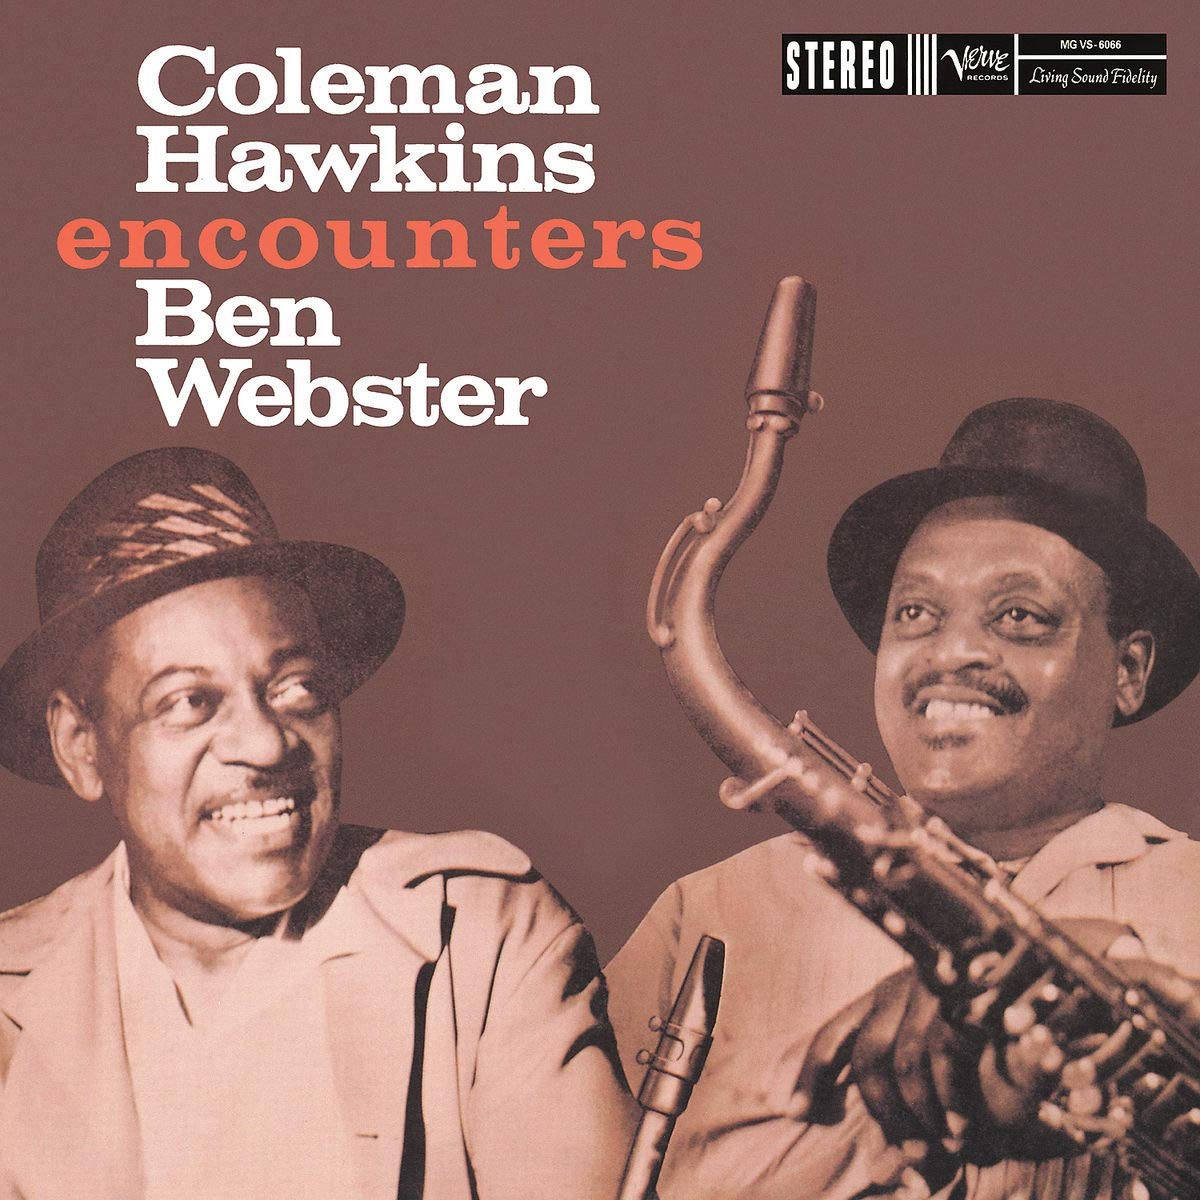 Коулмен Хокинс,Бен Уэбстер Coleman Hawkins & Ben Webster. Coleman Hawkins Encounters Ben Webster (LP) цена